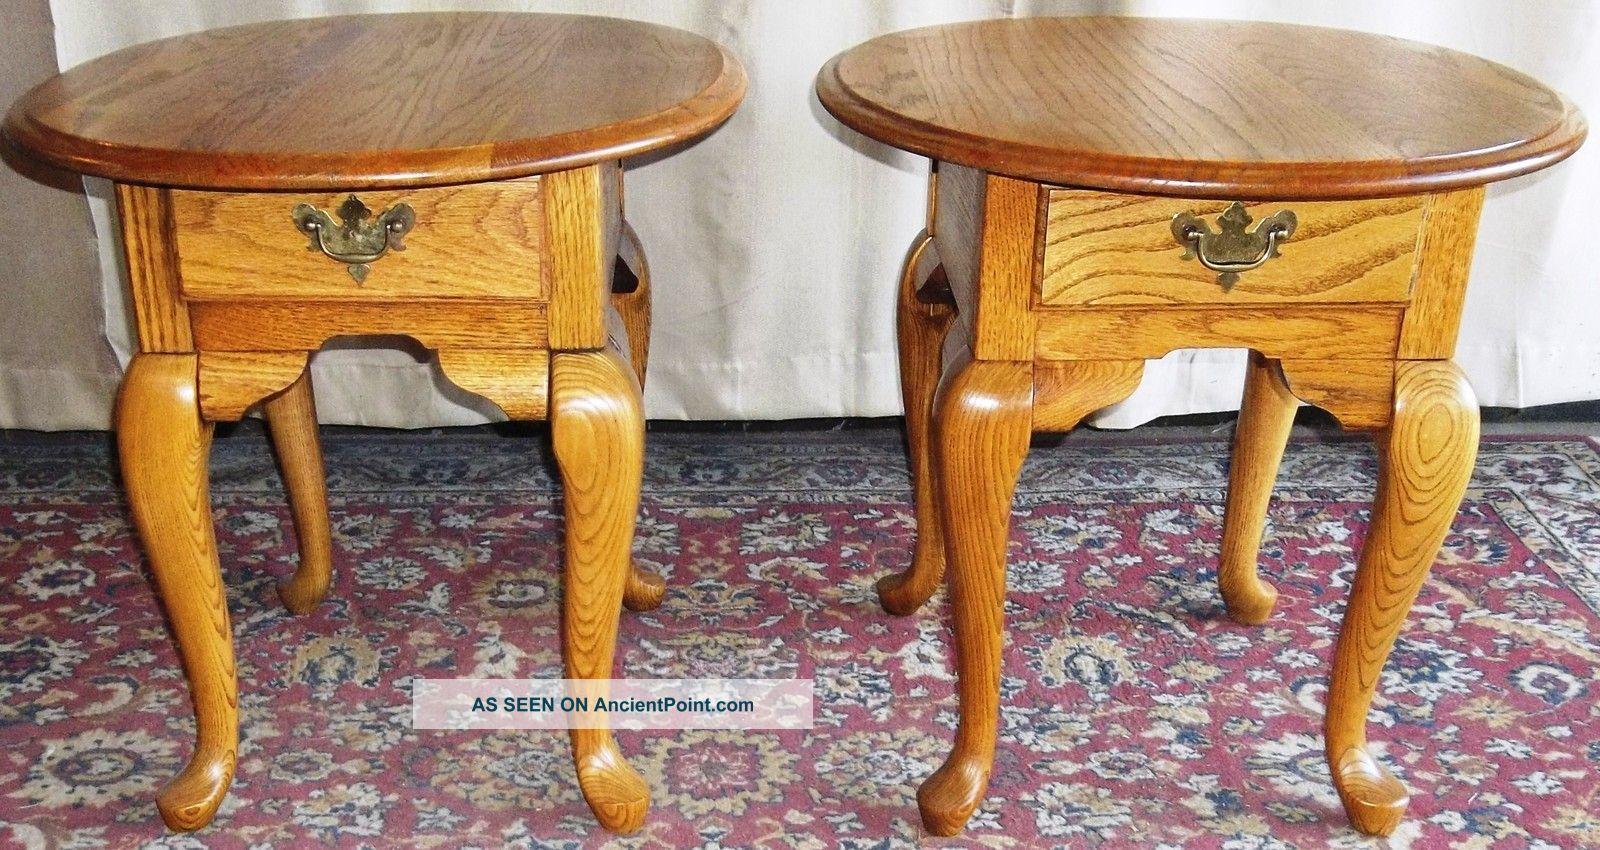 vintage broyhill oak queen anne side end tables drawers pair lgw eaten allen carved table square garden bayside furnishings ethan furniture wood glass and metal coffee building